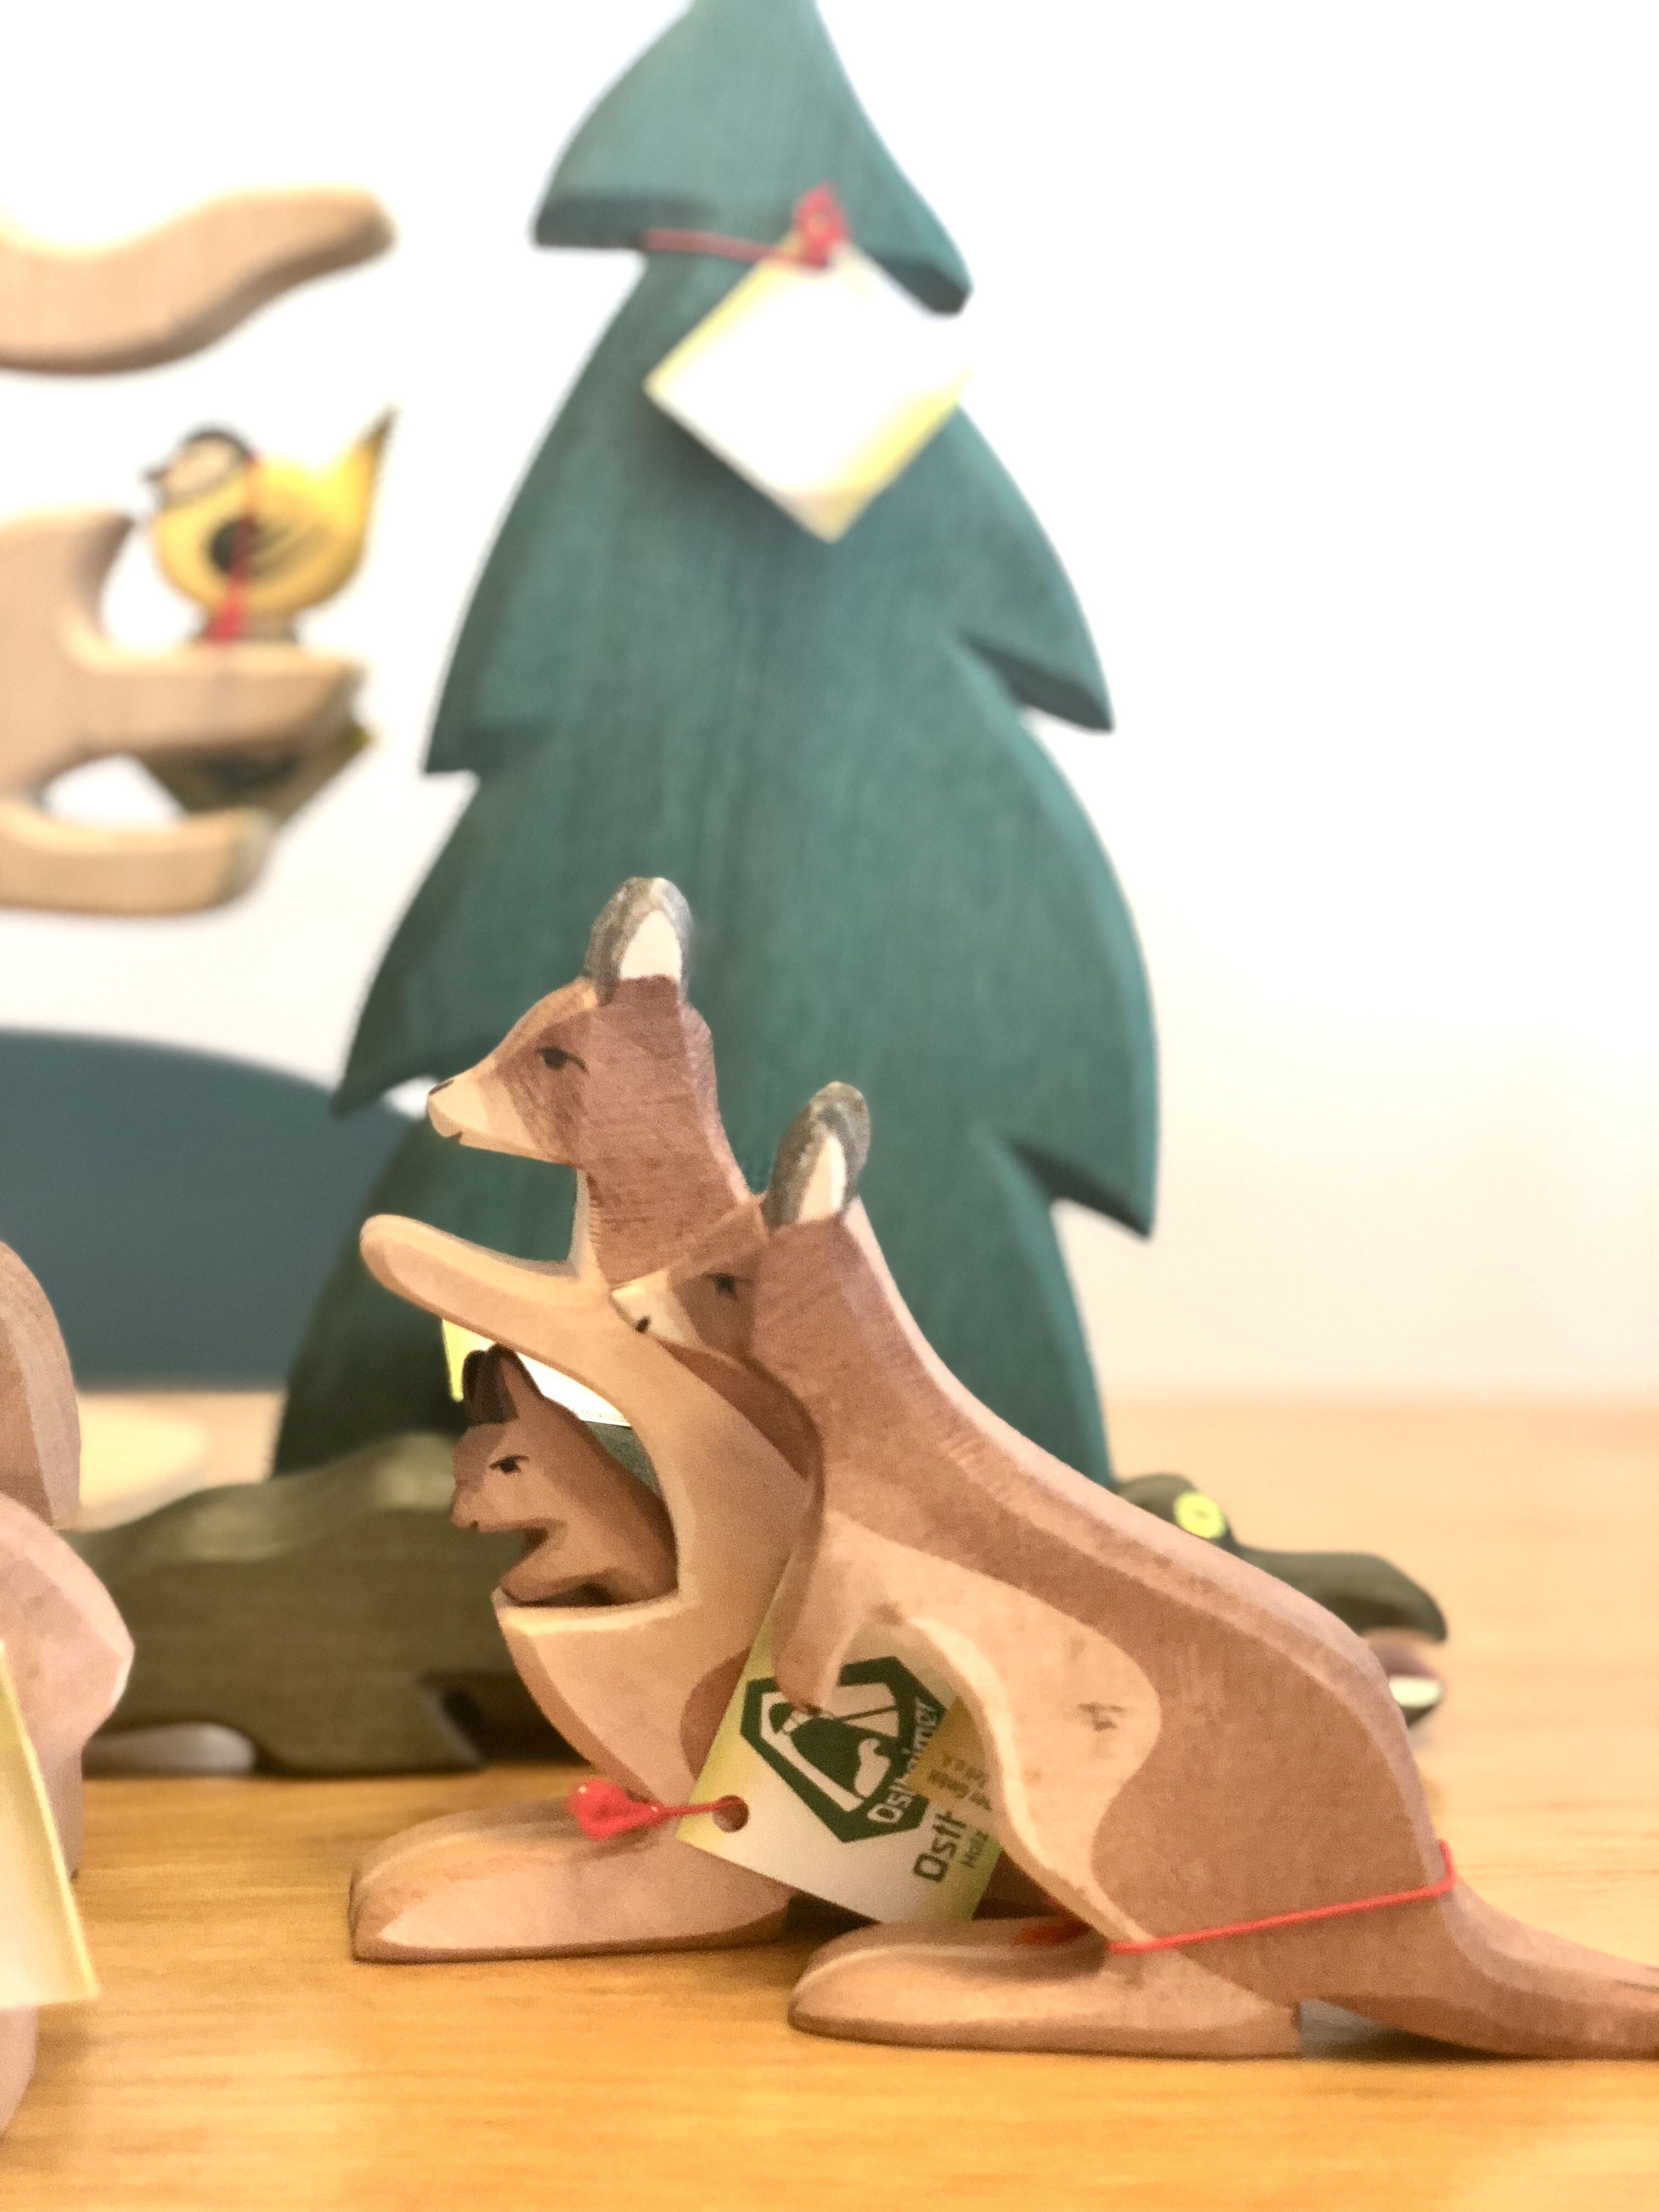 ostheimer handcrafted wooden toys, toys & games, bricks